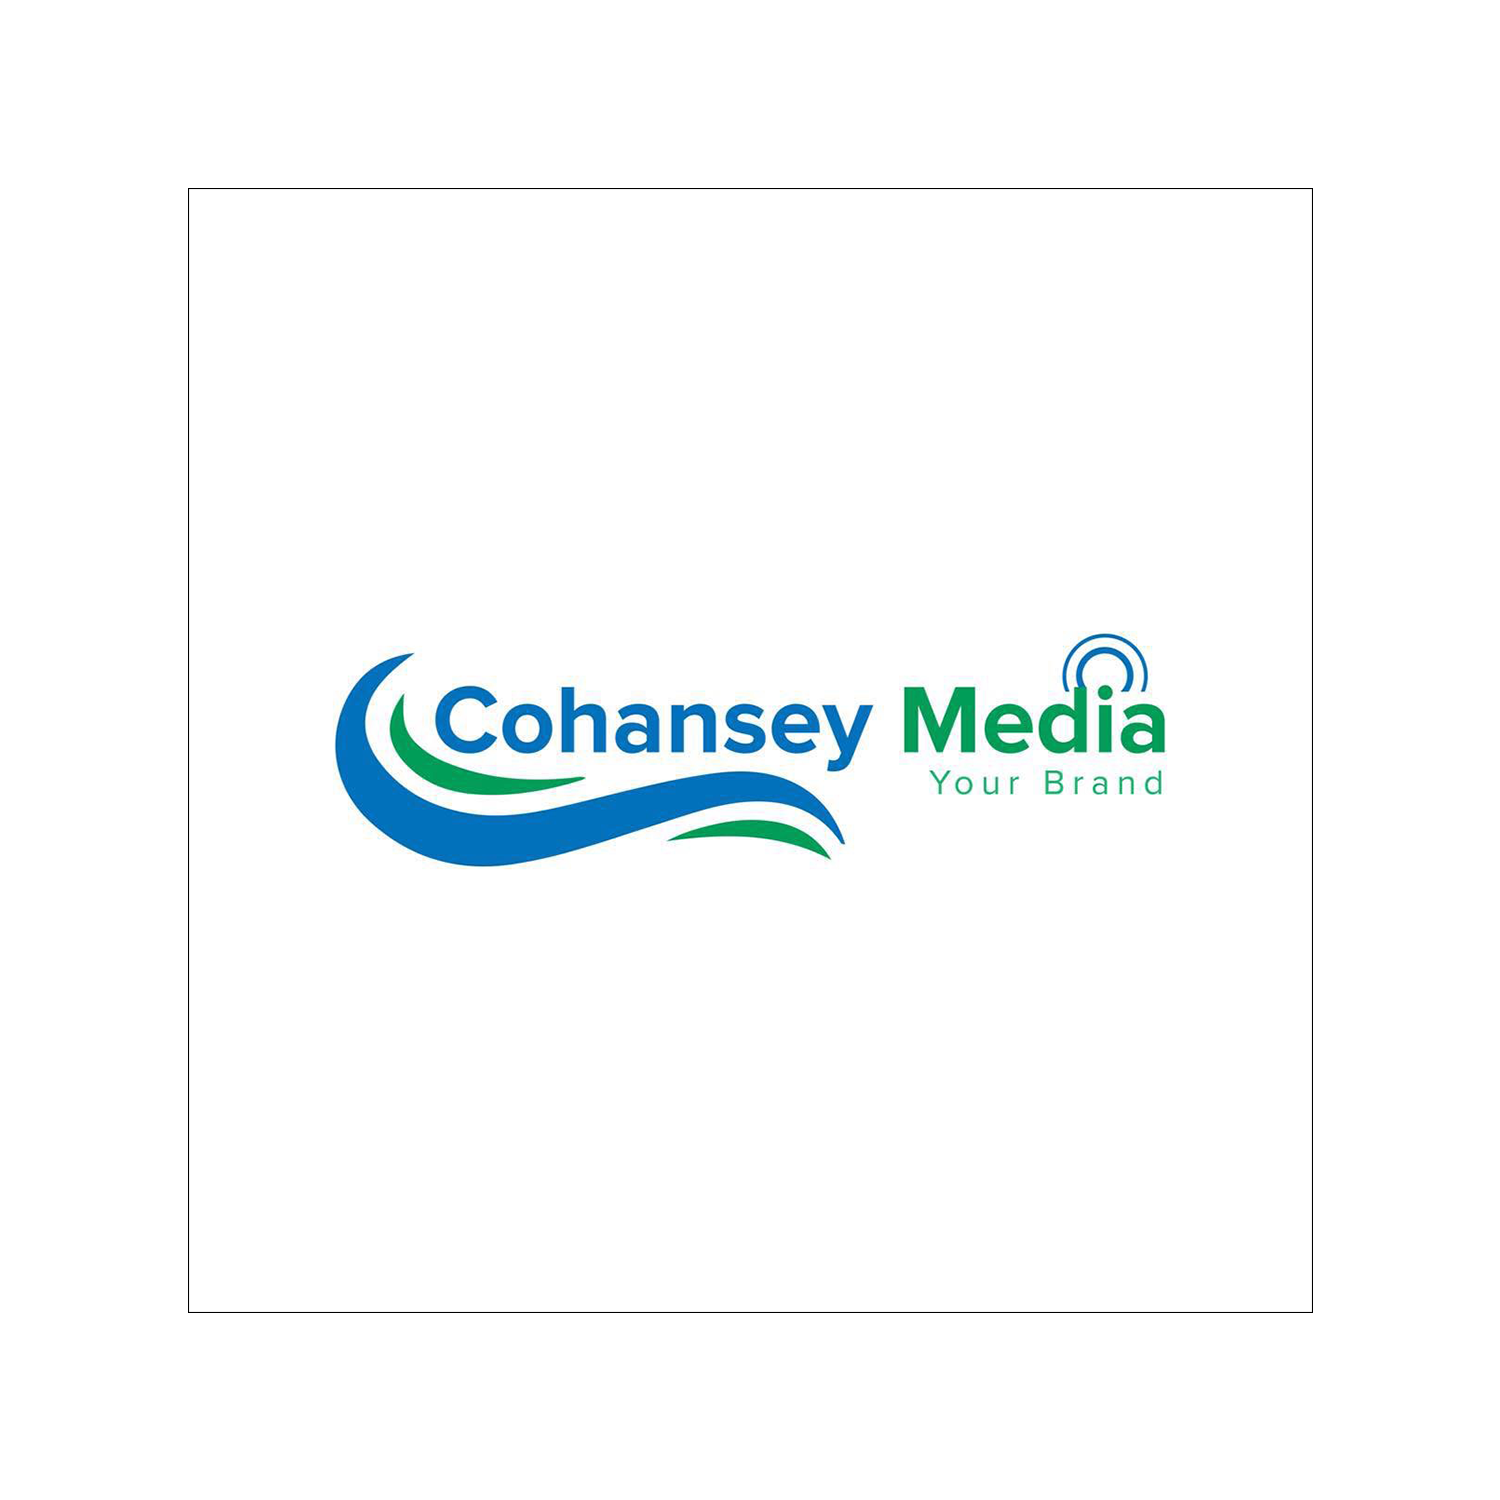 Cohansey Media